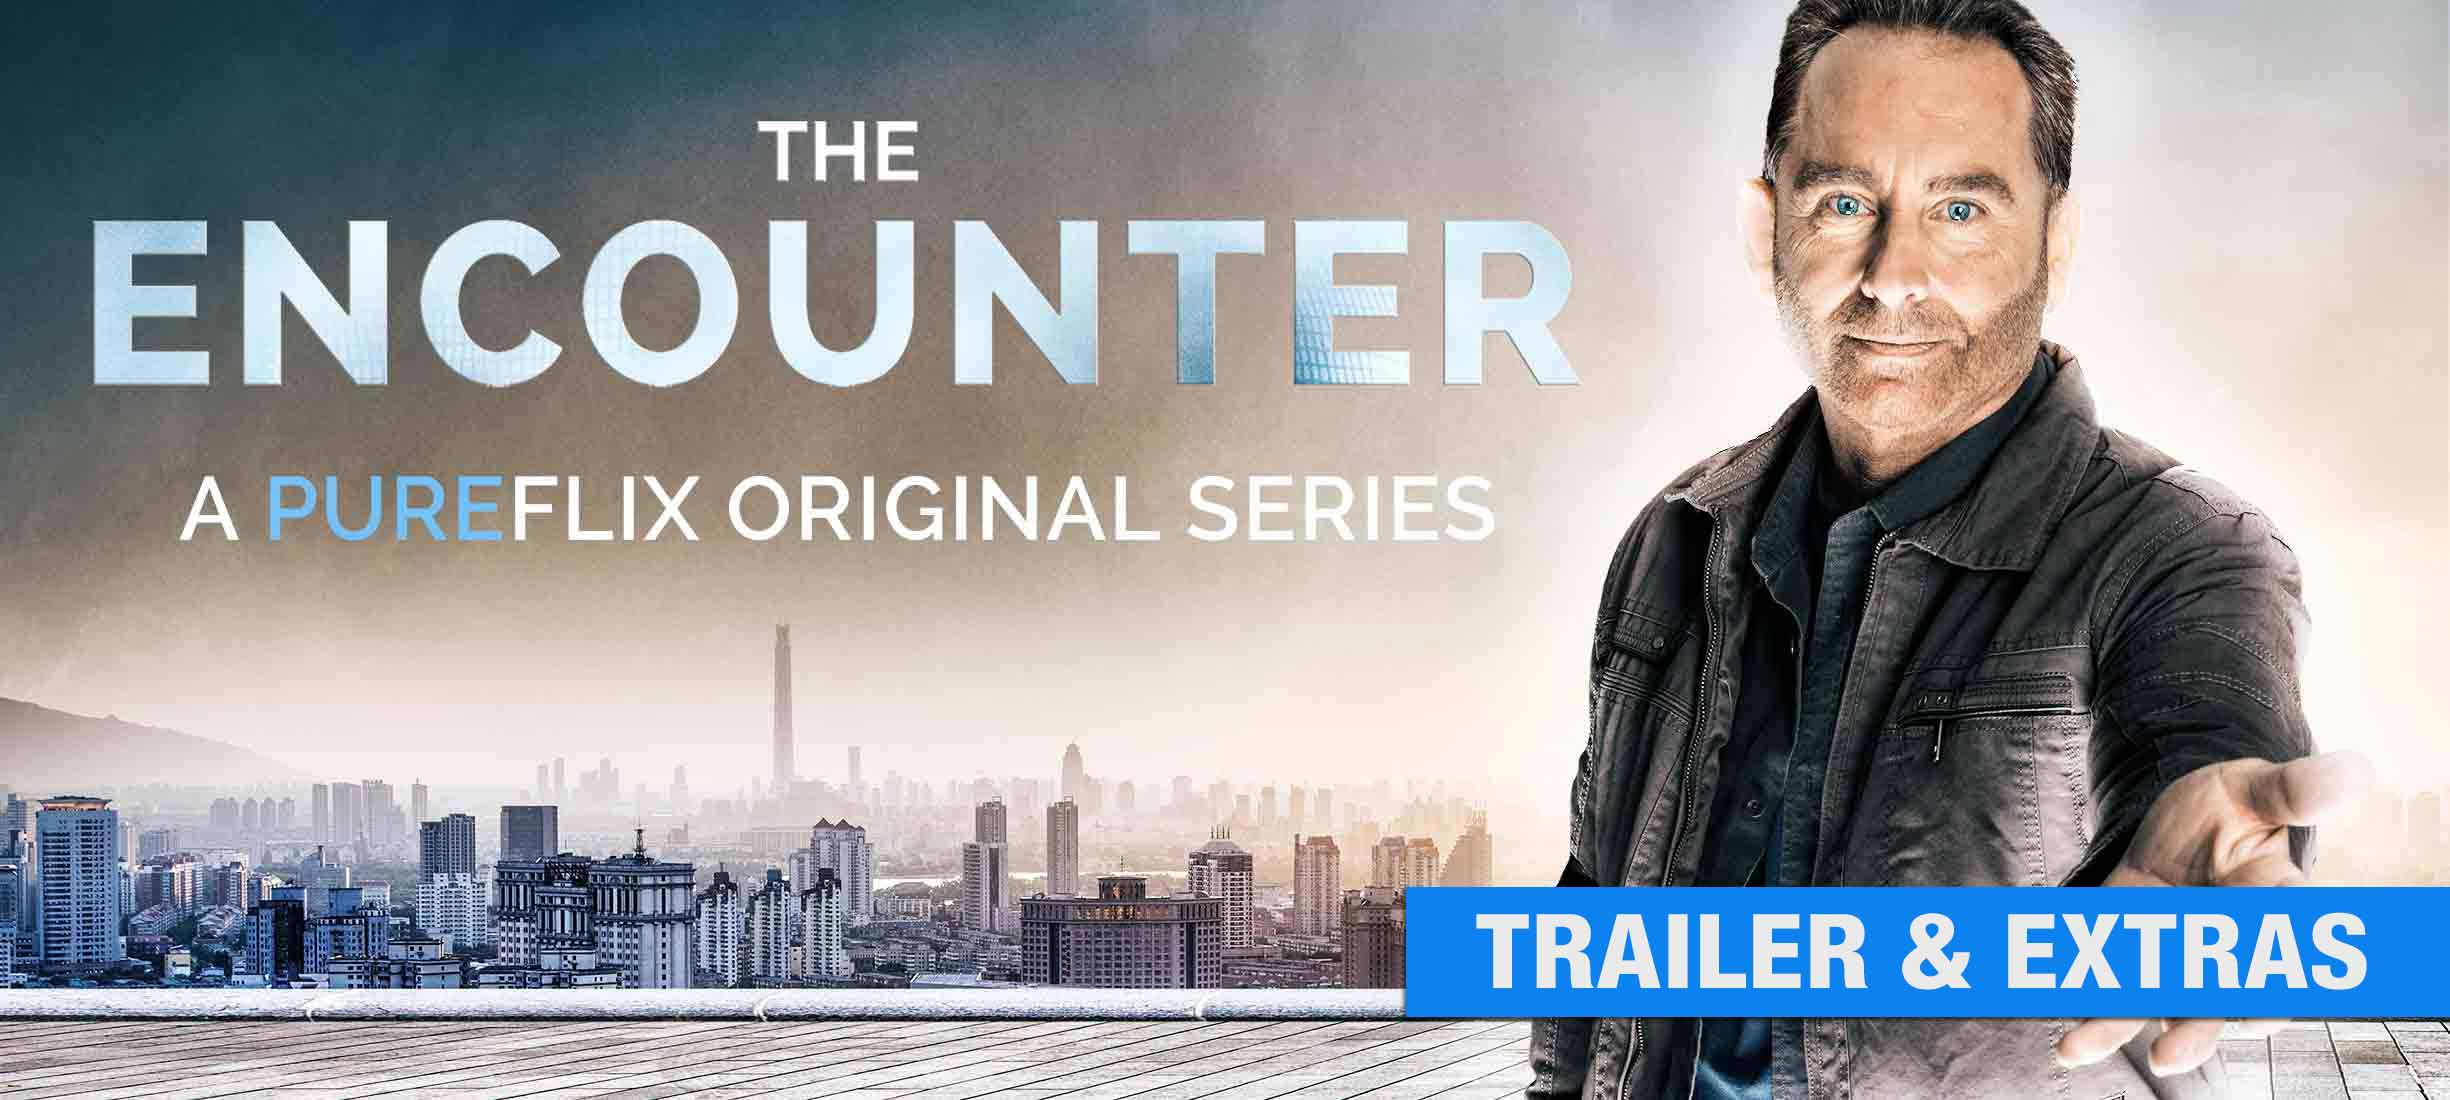 The Encounter Series: Trailer & Extras